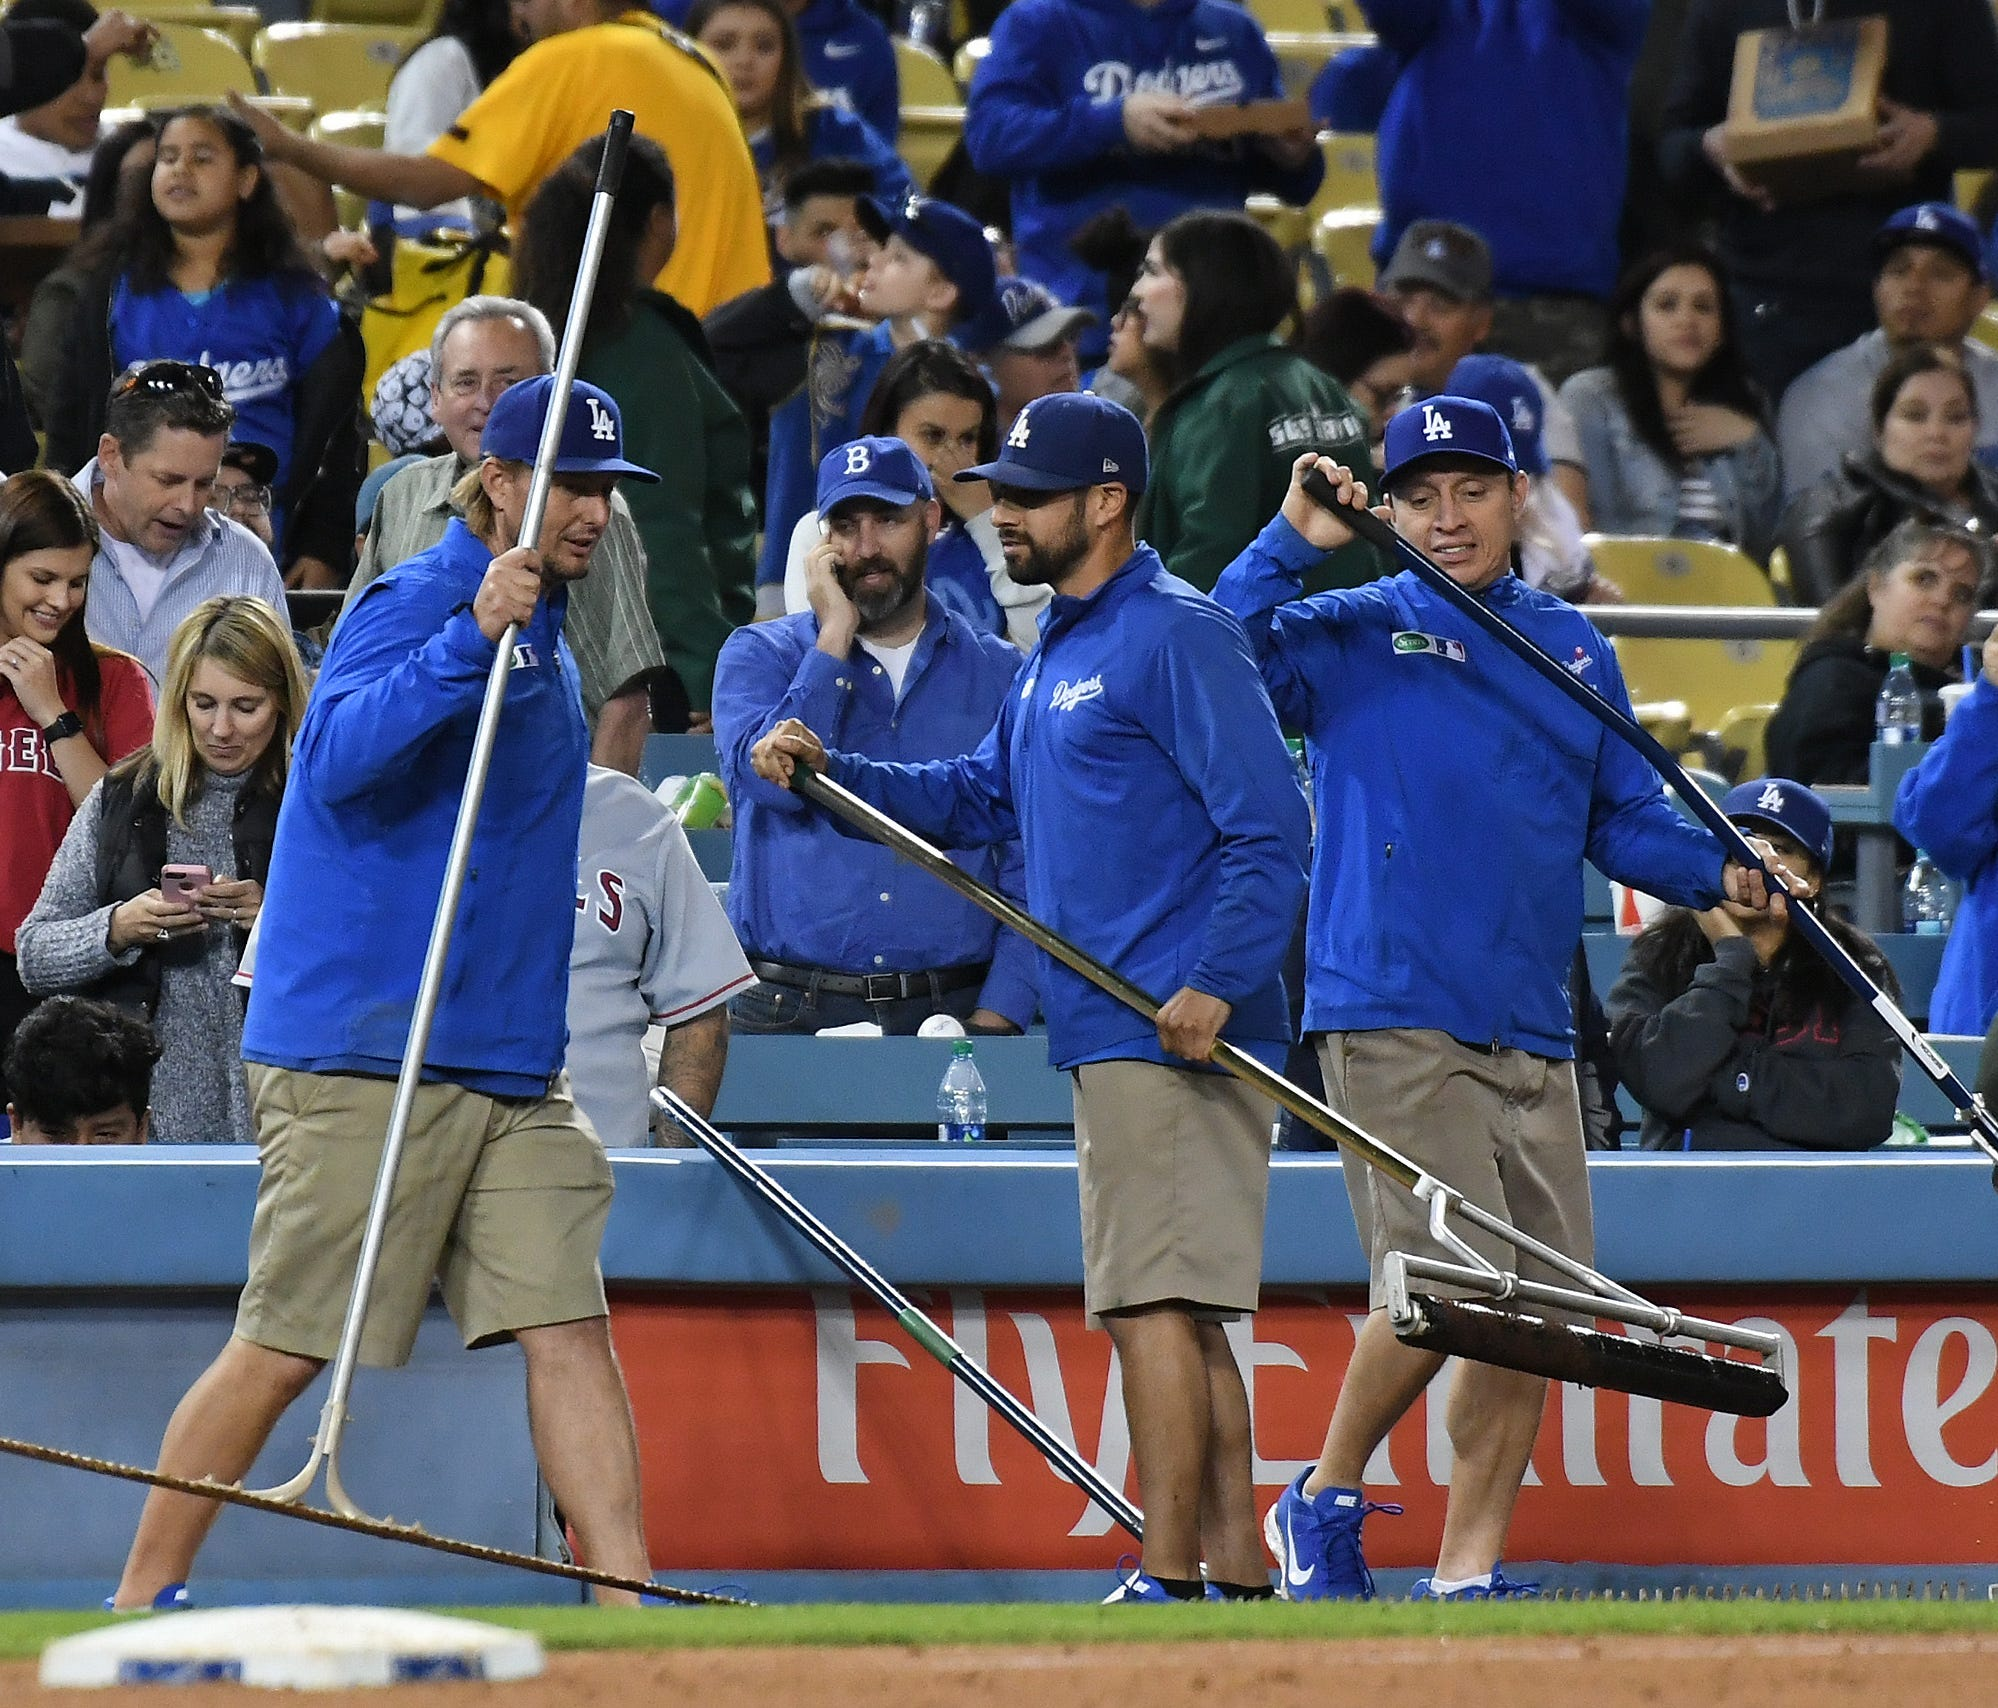 Groundskeepers sweep water on the field during the fifth inning of an exhibition game at Dodger Stadium.